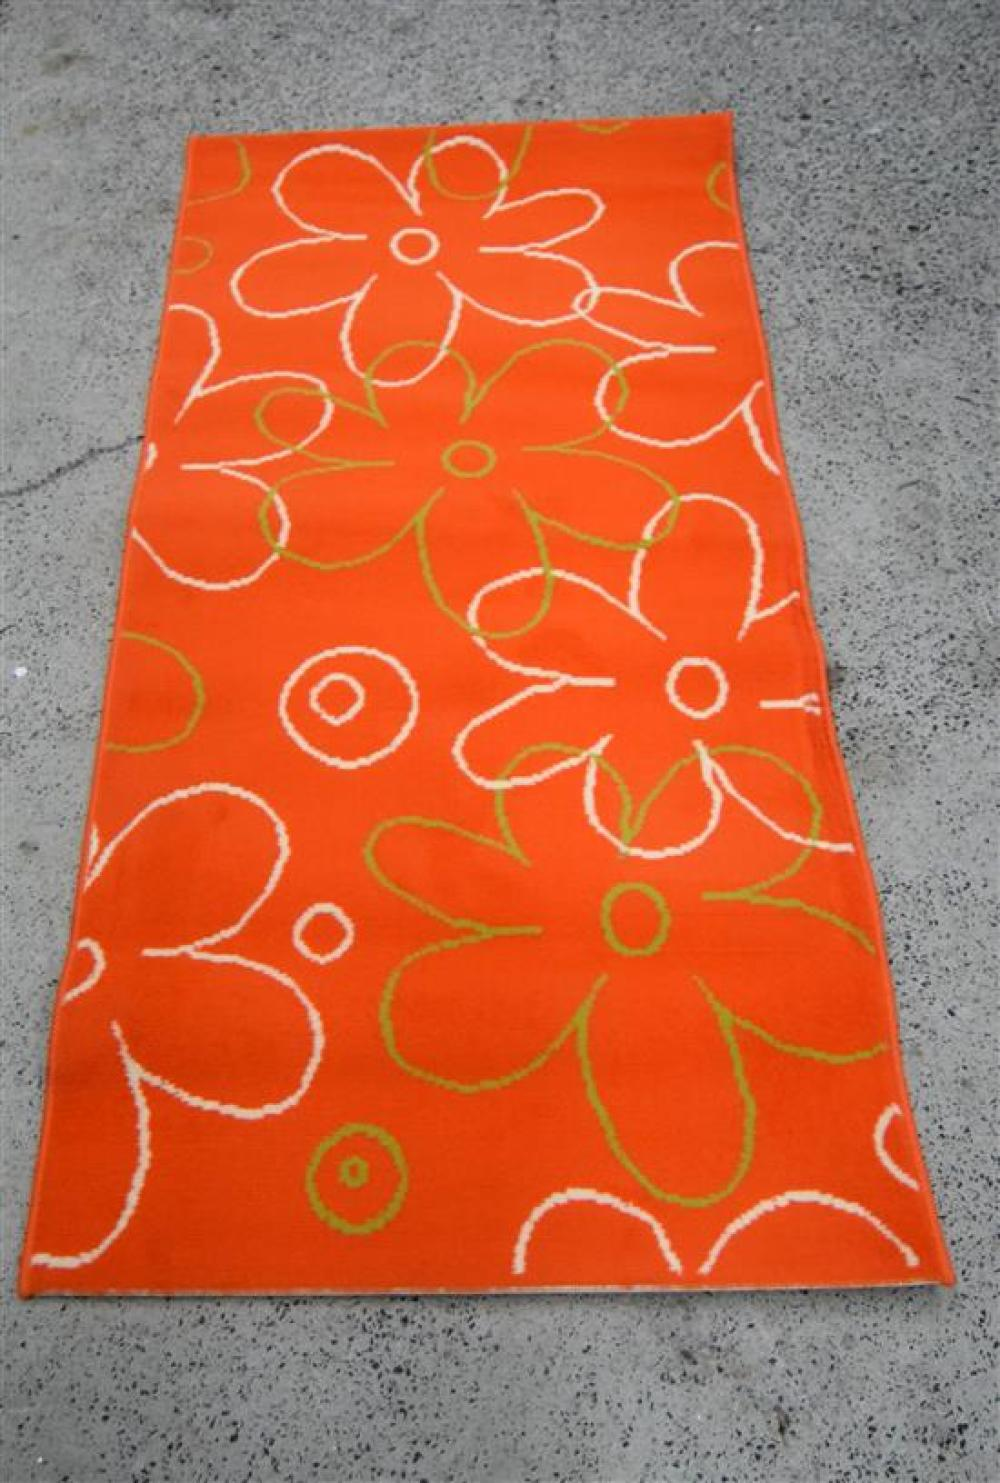 Five Balta Synthetic Rugs with an Orange Floral Design